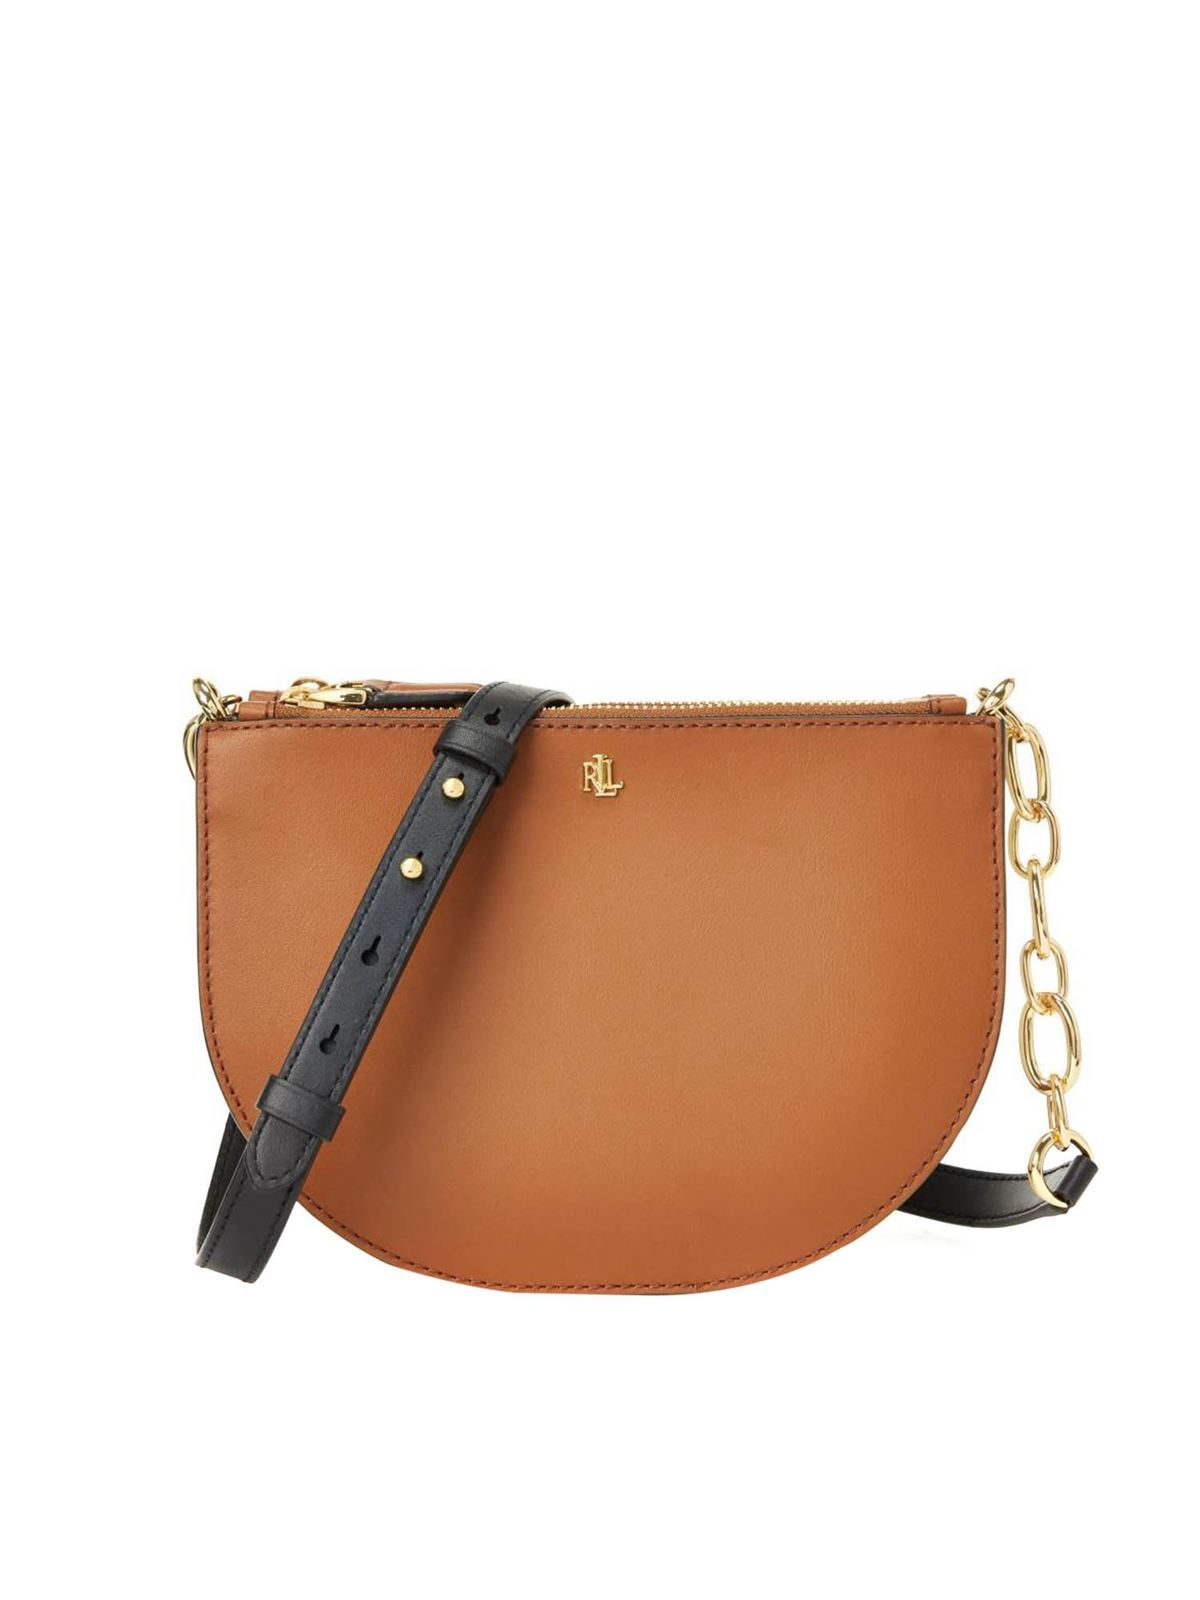 Lauren Ralph Lauren SUTTON 22 SHOULDER BAG IN BROWN